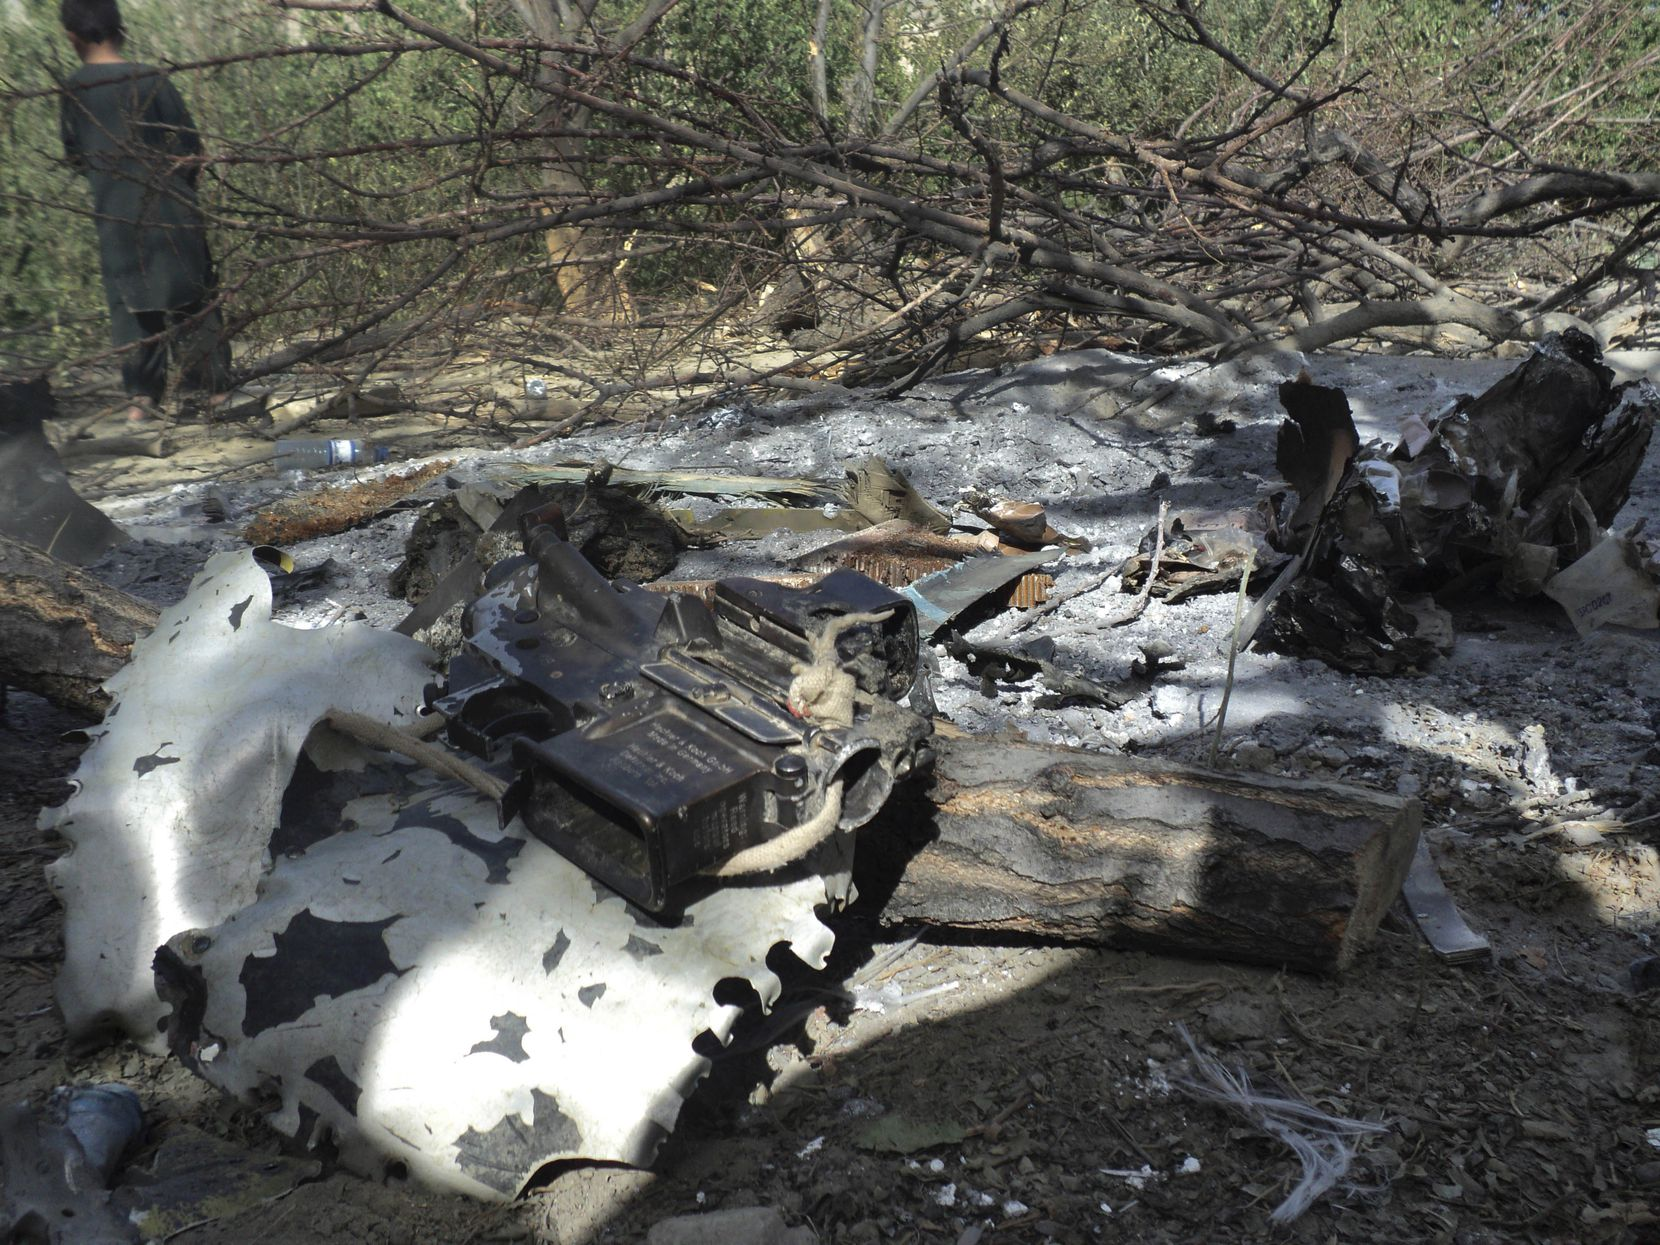 Wreckage of the Chinook helicopter at the site of the crash killing 30 Americans and eight Afghans. The helicopter that insurgents shot down burst into flames before hitting the ground, leaving wreckage scattered on both sides of a river, witnesses told The Associated Press.